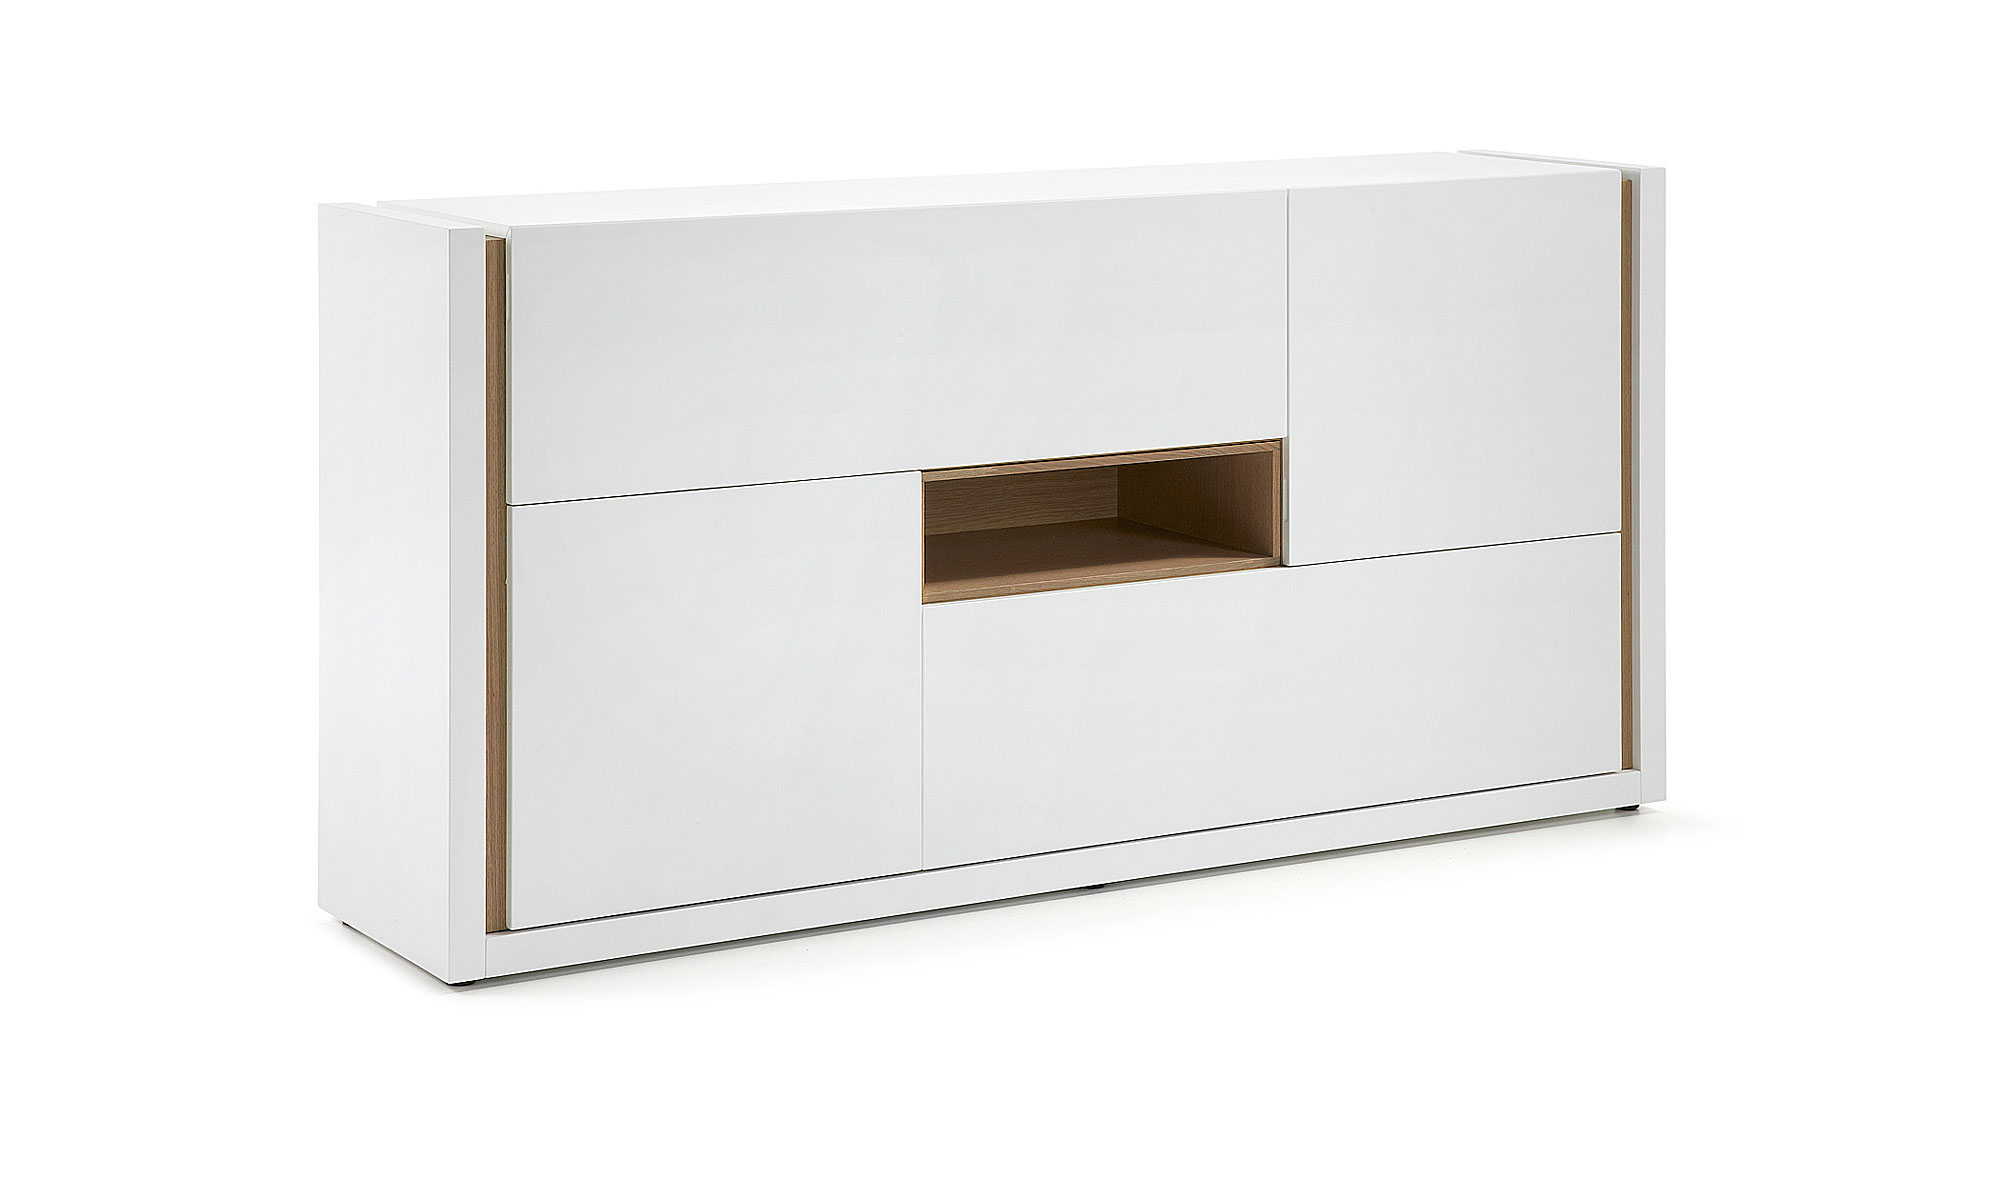 Aparador lacado mate blanco puro en for Mueble buffet moderno